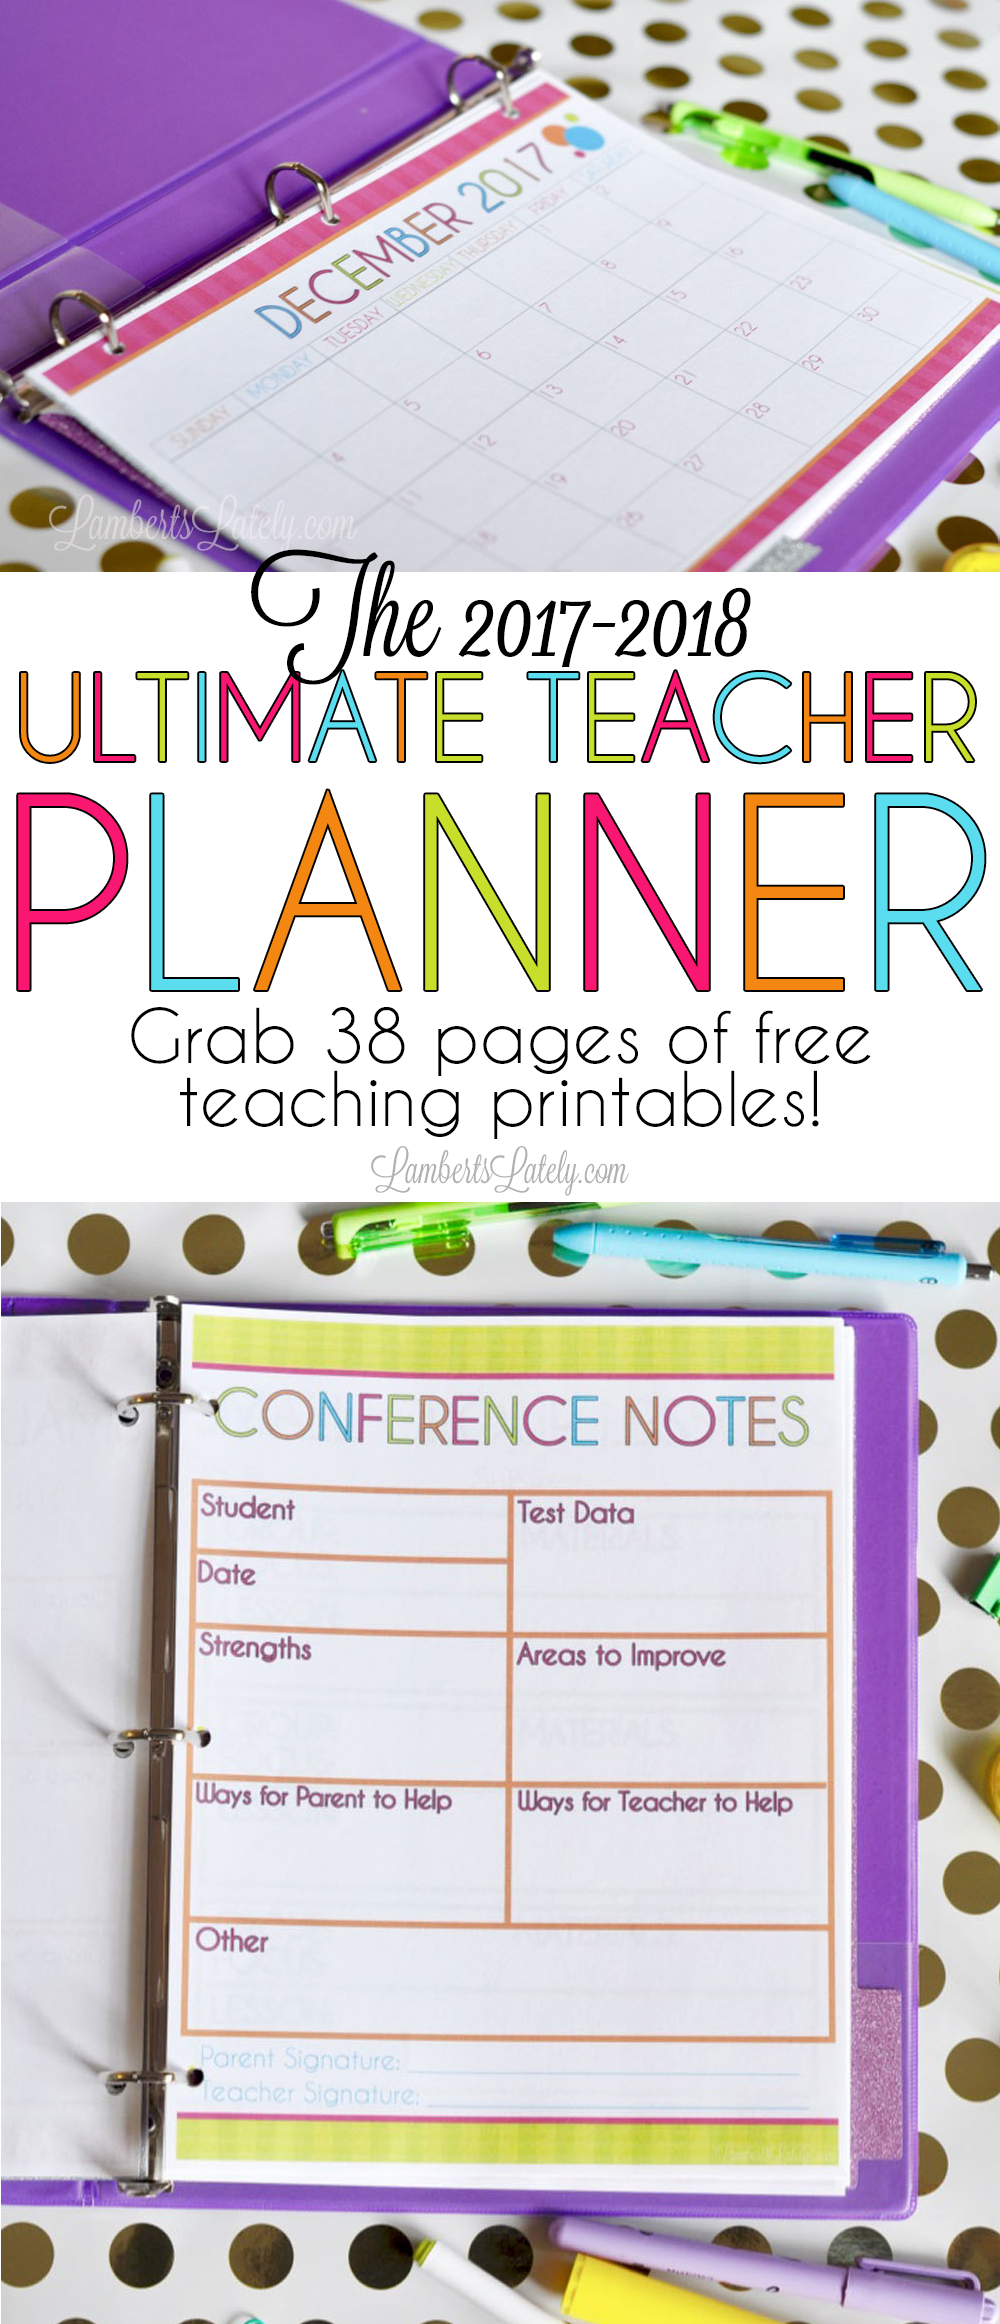 i love this bright and colorful 2017 2018 printable teacher planner it has so